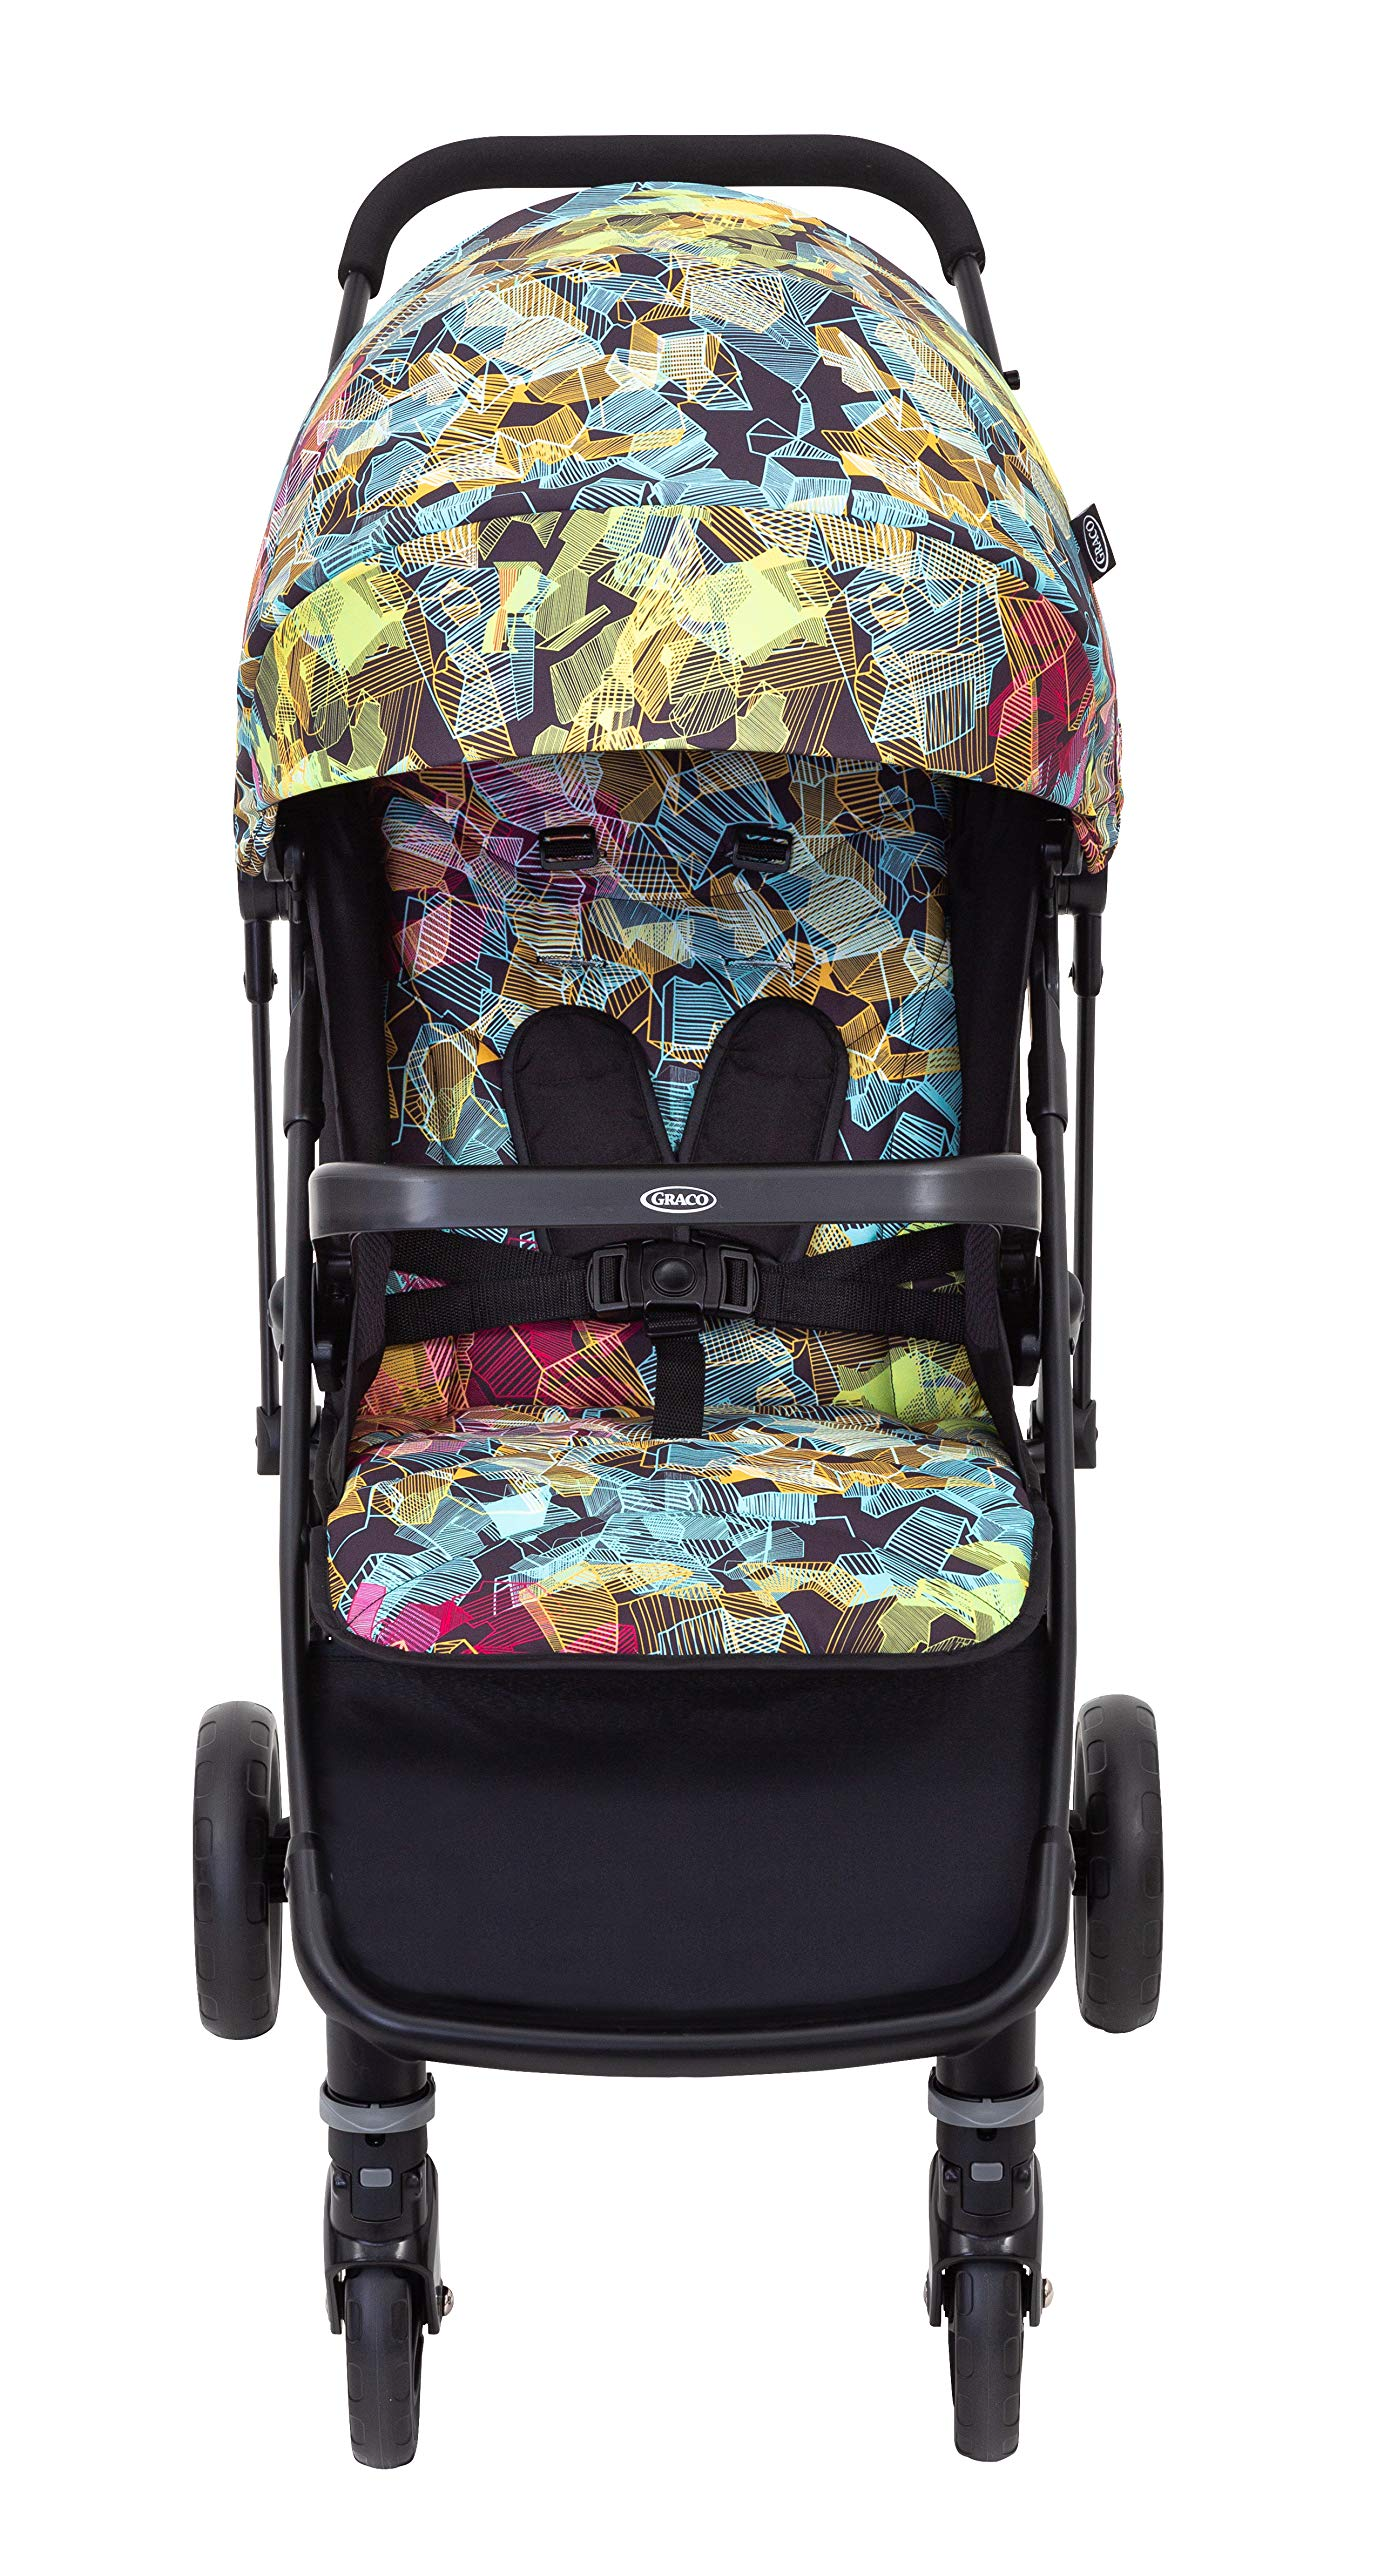 Graco Breaze Lite Stroller, Kaleidoscope Graco From birth to 3 years approx. (0-15kg) Lightweight at only 6.5kg Click connect travel system compatible with graco snugride/snugessentials isize infant car seats 1